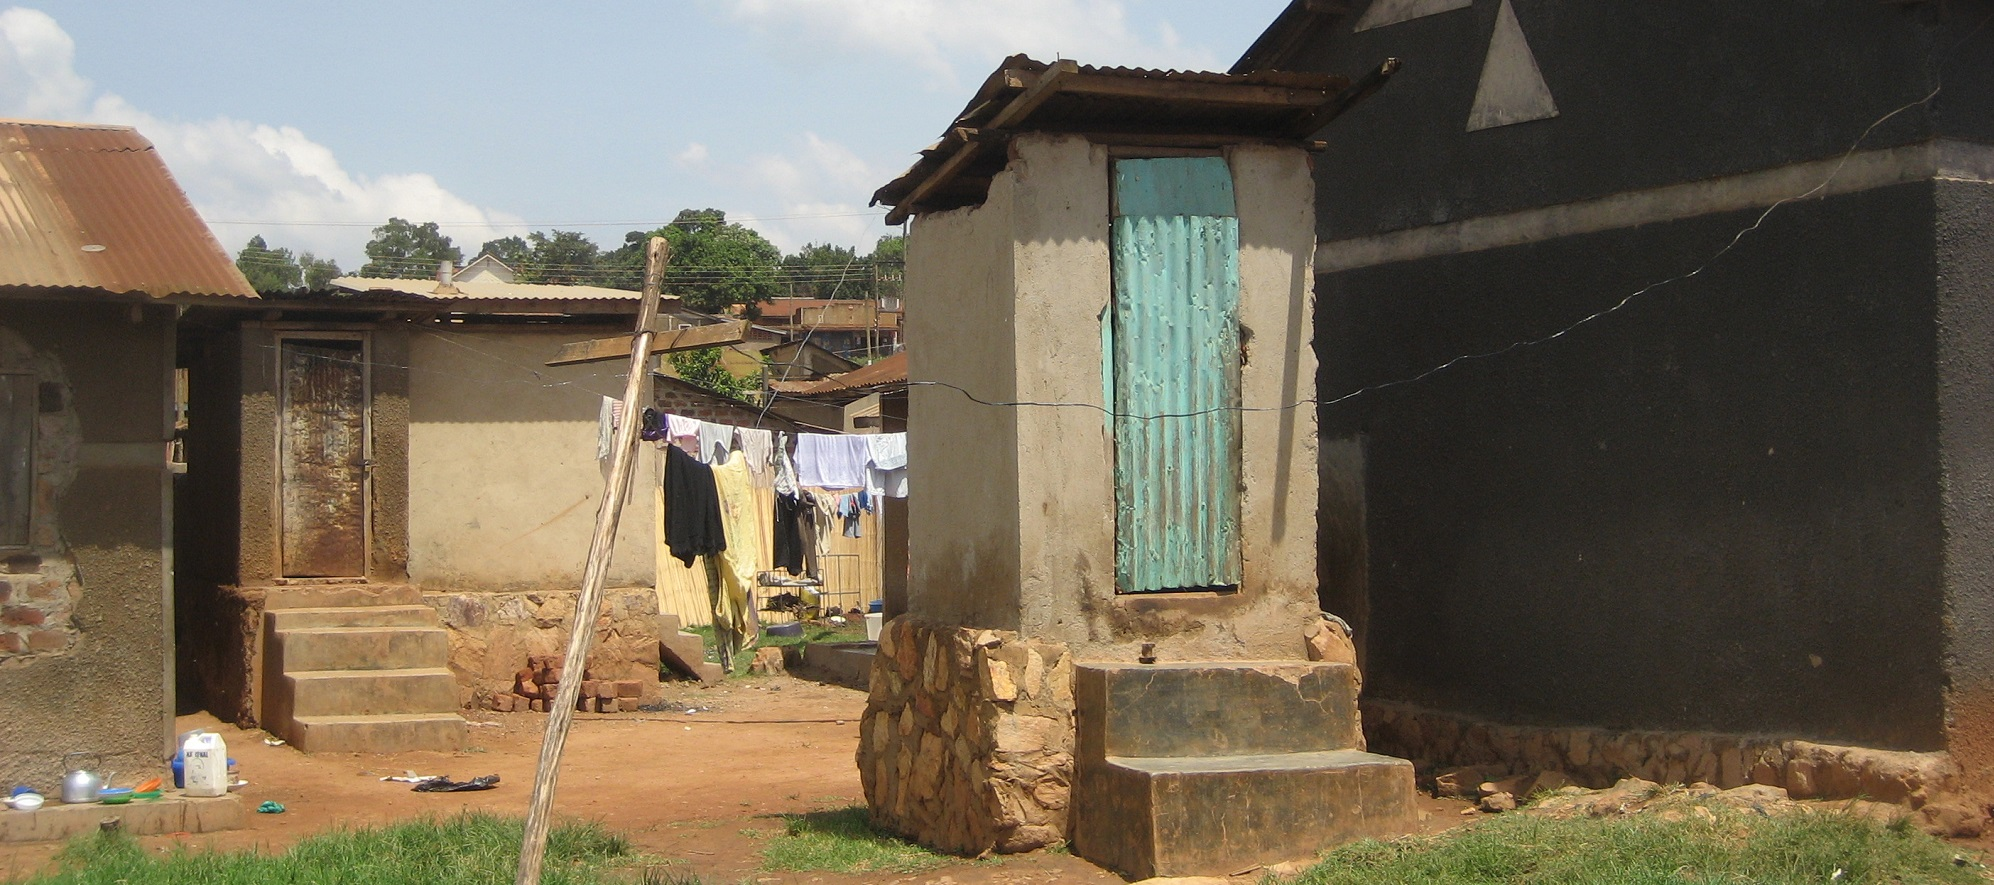 The Past and Future of Uganda's Sanitation: A Photo Essay